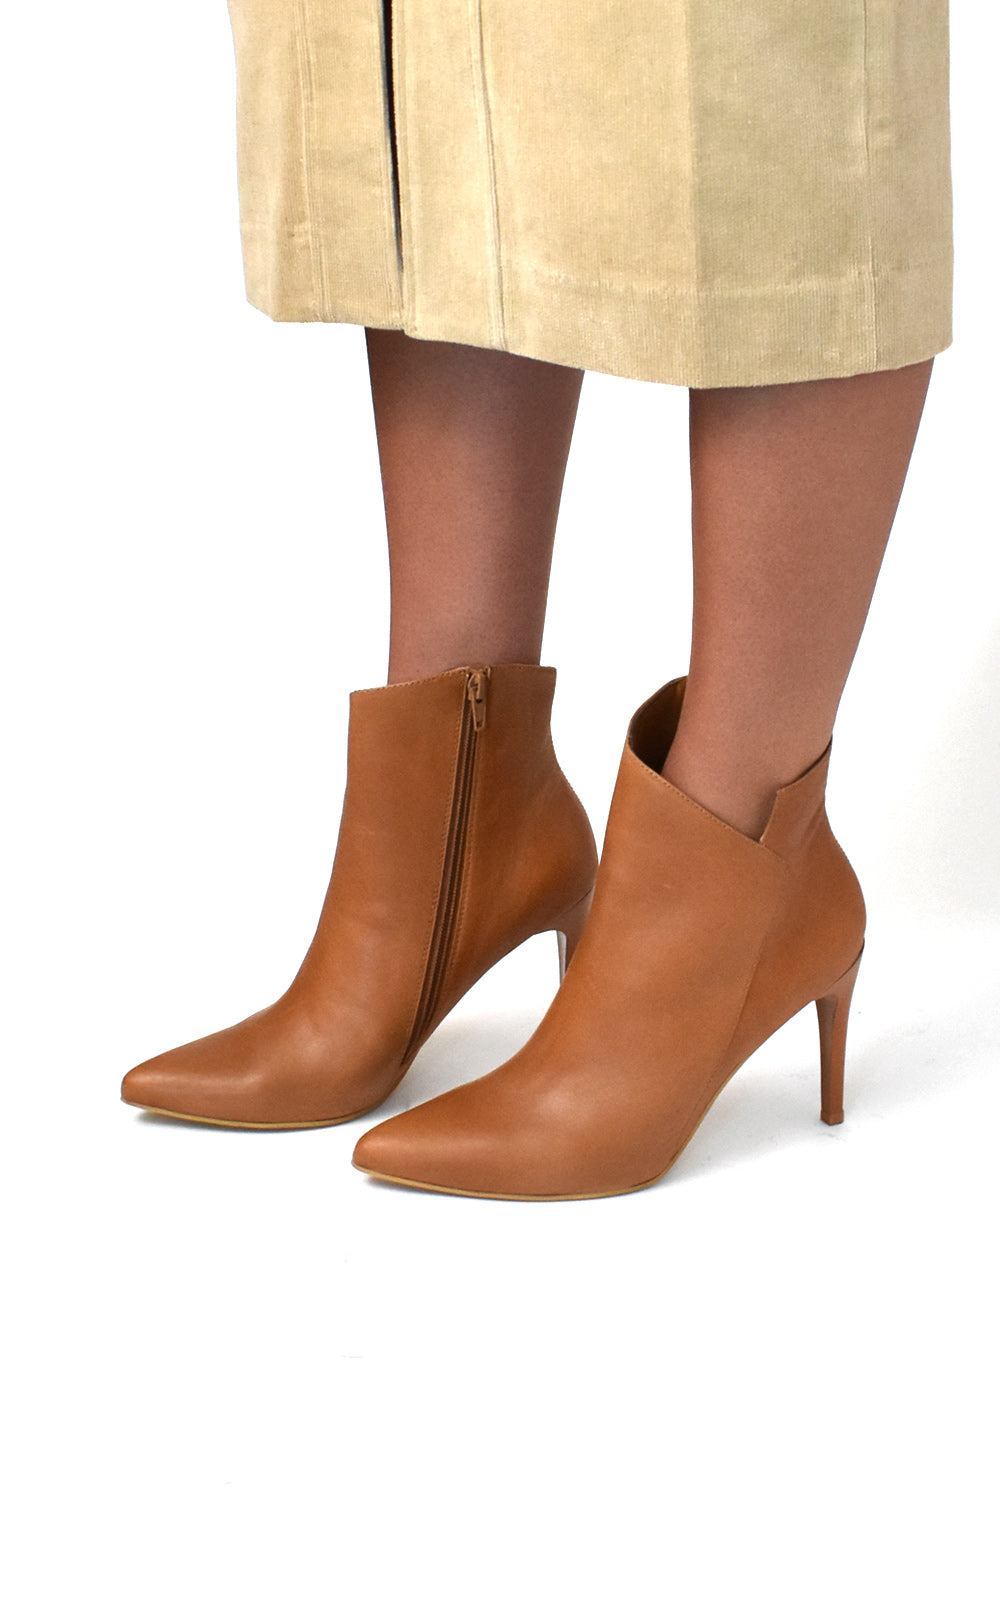 Radiance Stiletto Tanned Leather Bootie